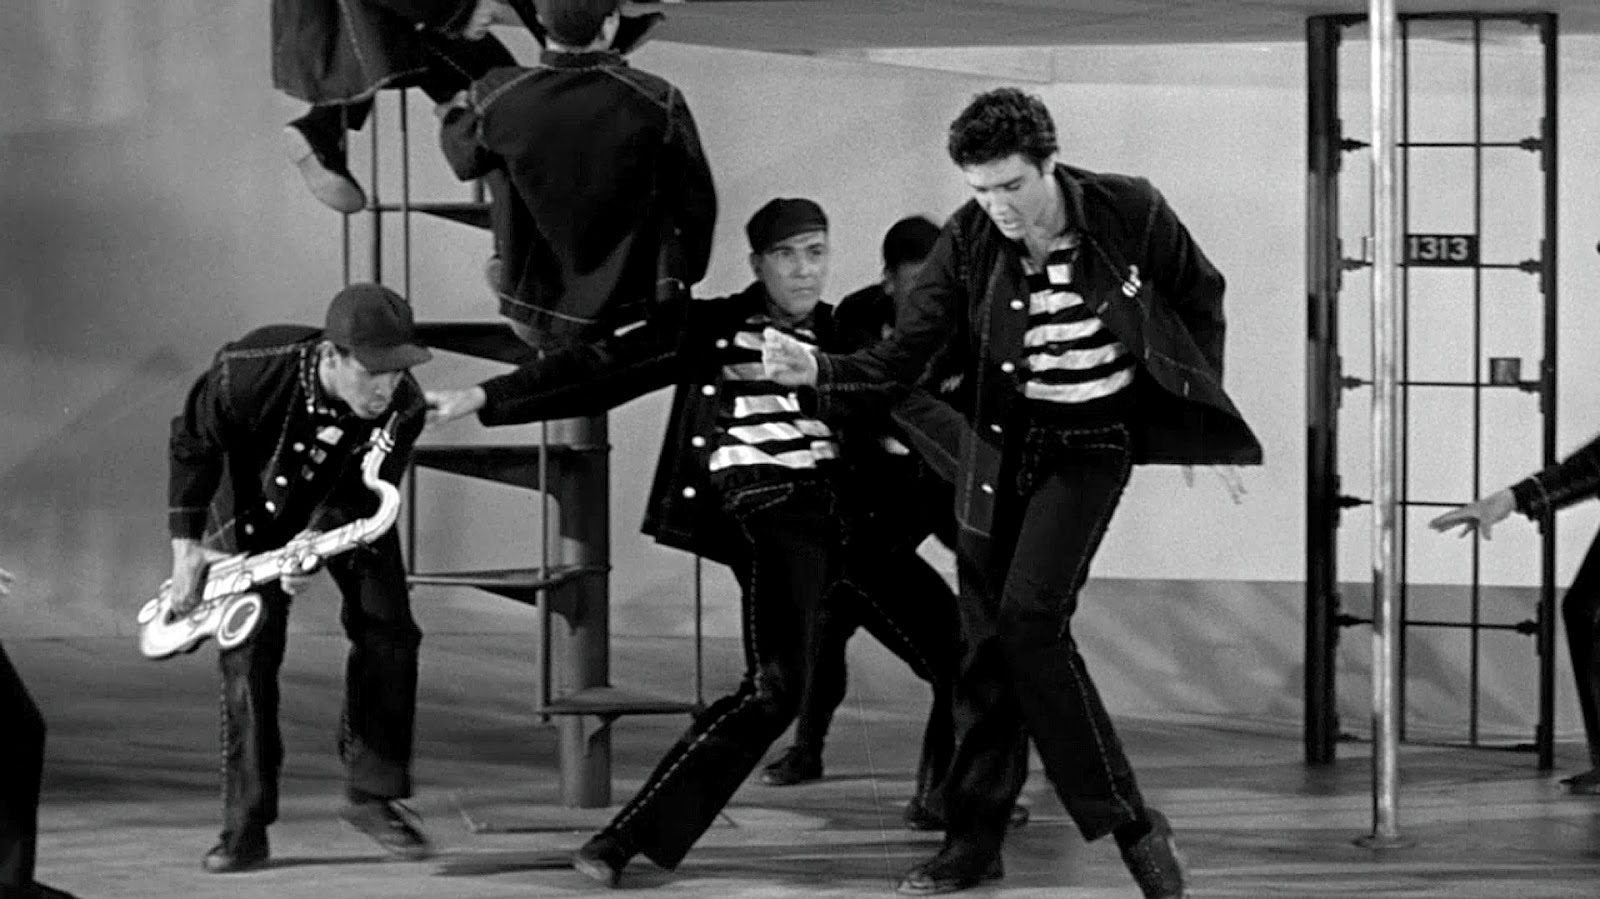 Jailhouse Rock the song